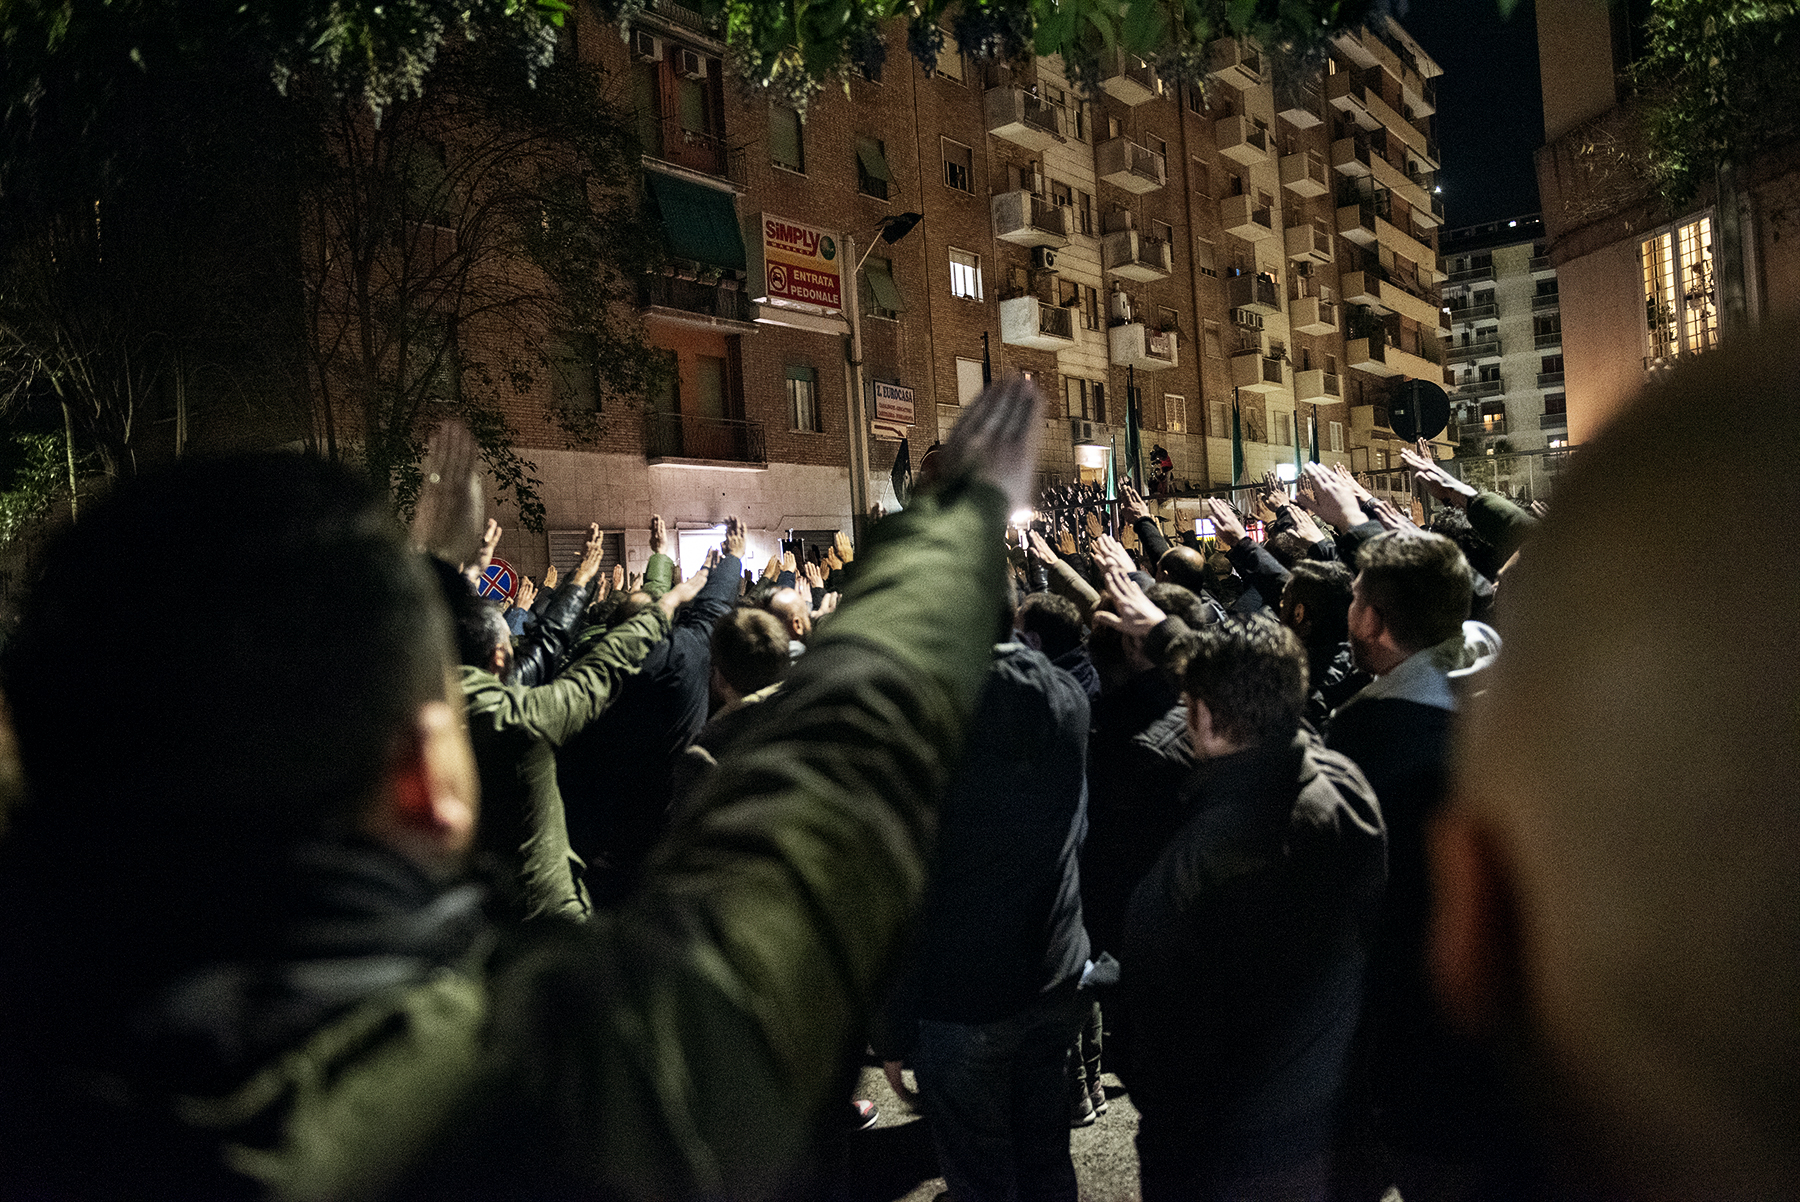 Casapound far-right wing militants do the Nazi salute in front of former MSI (Italian Social Movement) party branch during the 41st anniversary of Acca Larentia killings in Rome, Italy, on January 07, 2019.The Acca Larentia killings refers to the political killing of three fascist activists - Franco Bigonzetti, Francesco Ciavatta and Stefano Recchioni - of the Youth Front of the Italian Social Movement the evening of January 7, 1978, in Rome. In past years, Italian far-right movements such as Casapound have used the Acca Larentia's anniversary as a main event in their political agenda, gathering thousands of militants from all around the country.